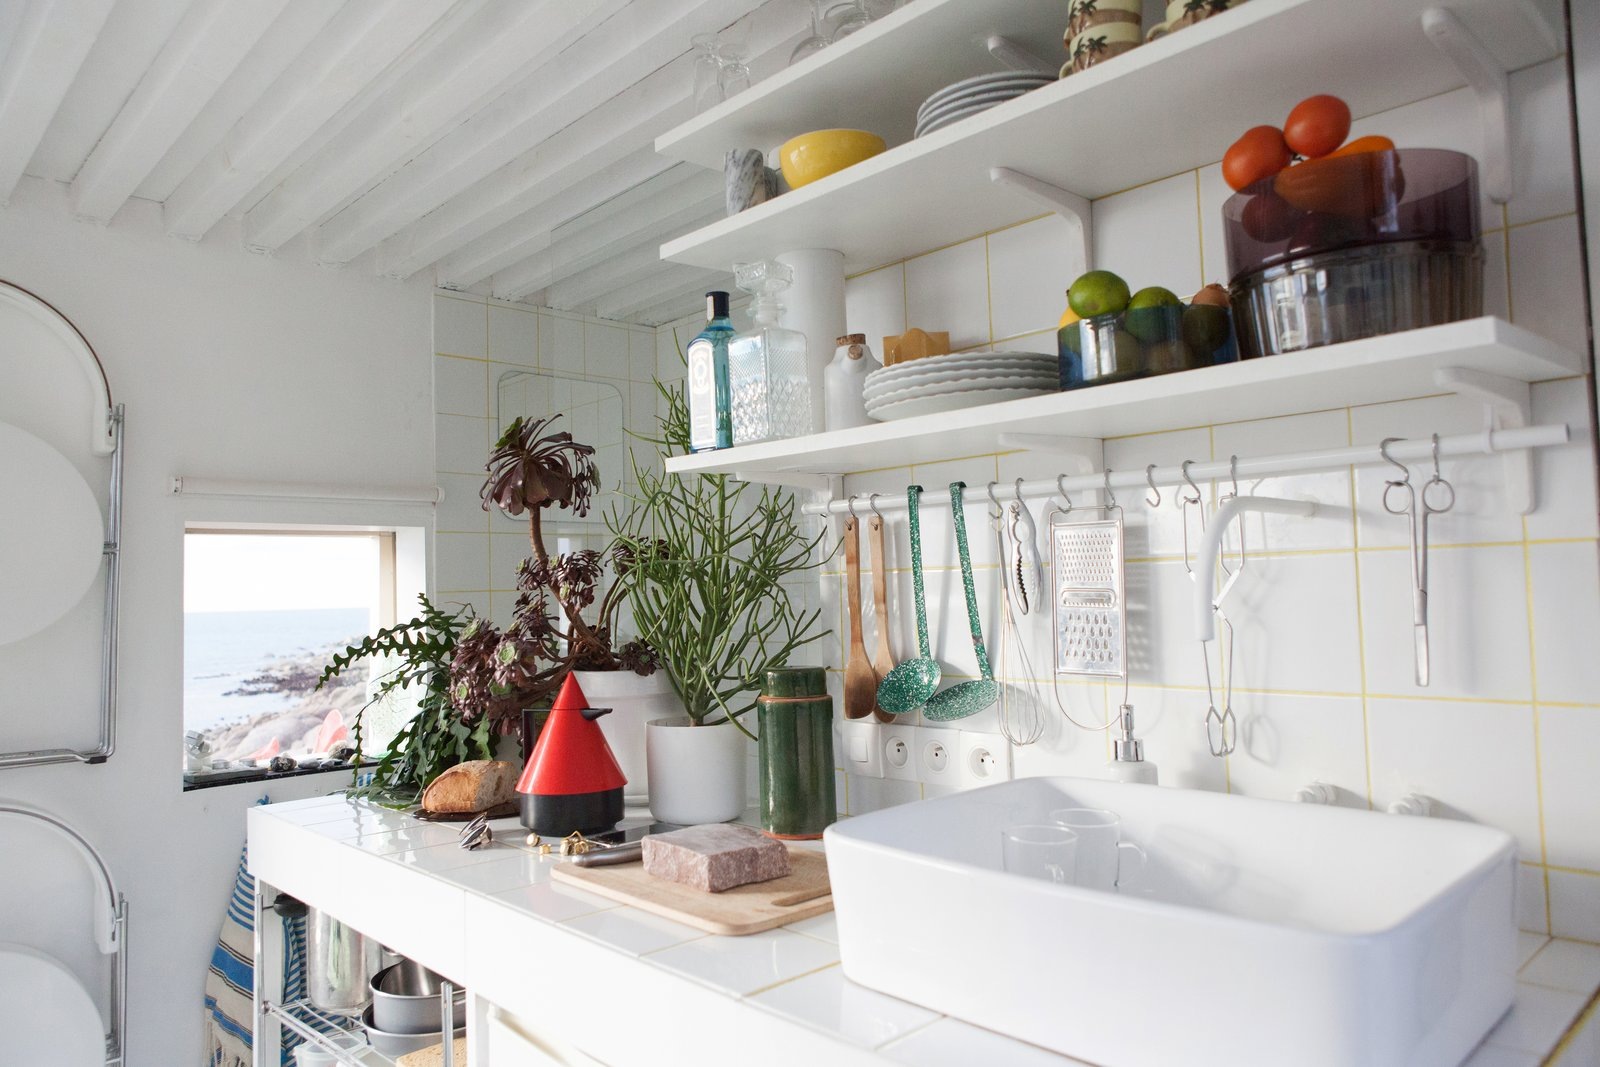 Kitchen and Vessel Sink @aubry.guillaume  Viking Seaside Summer Cabin